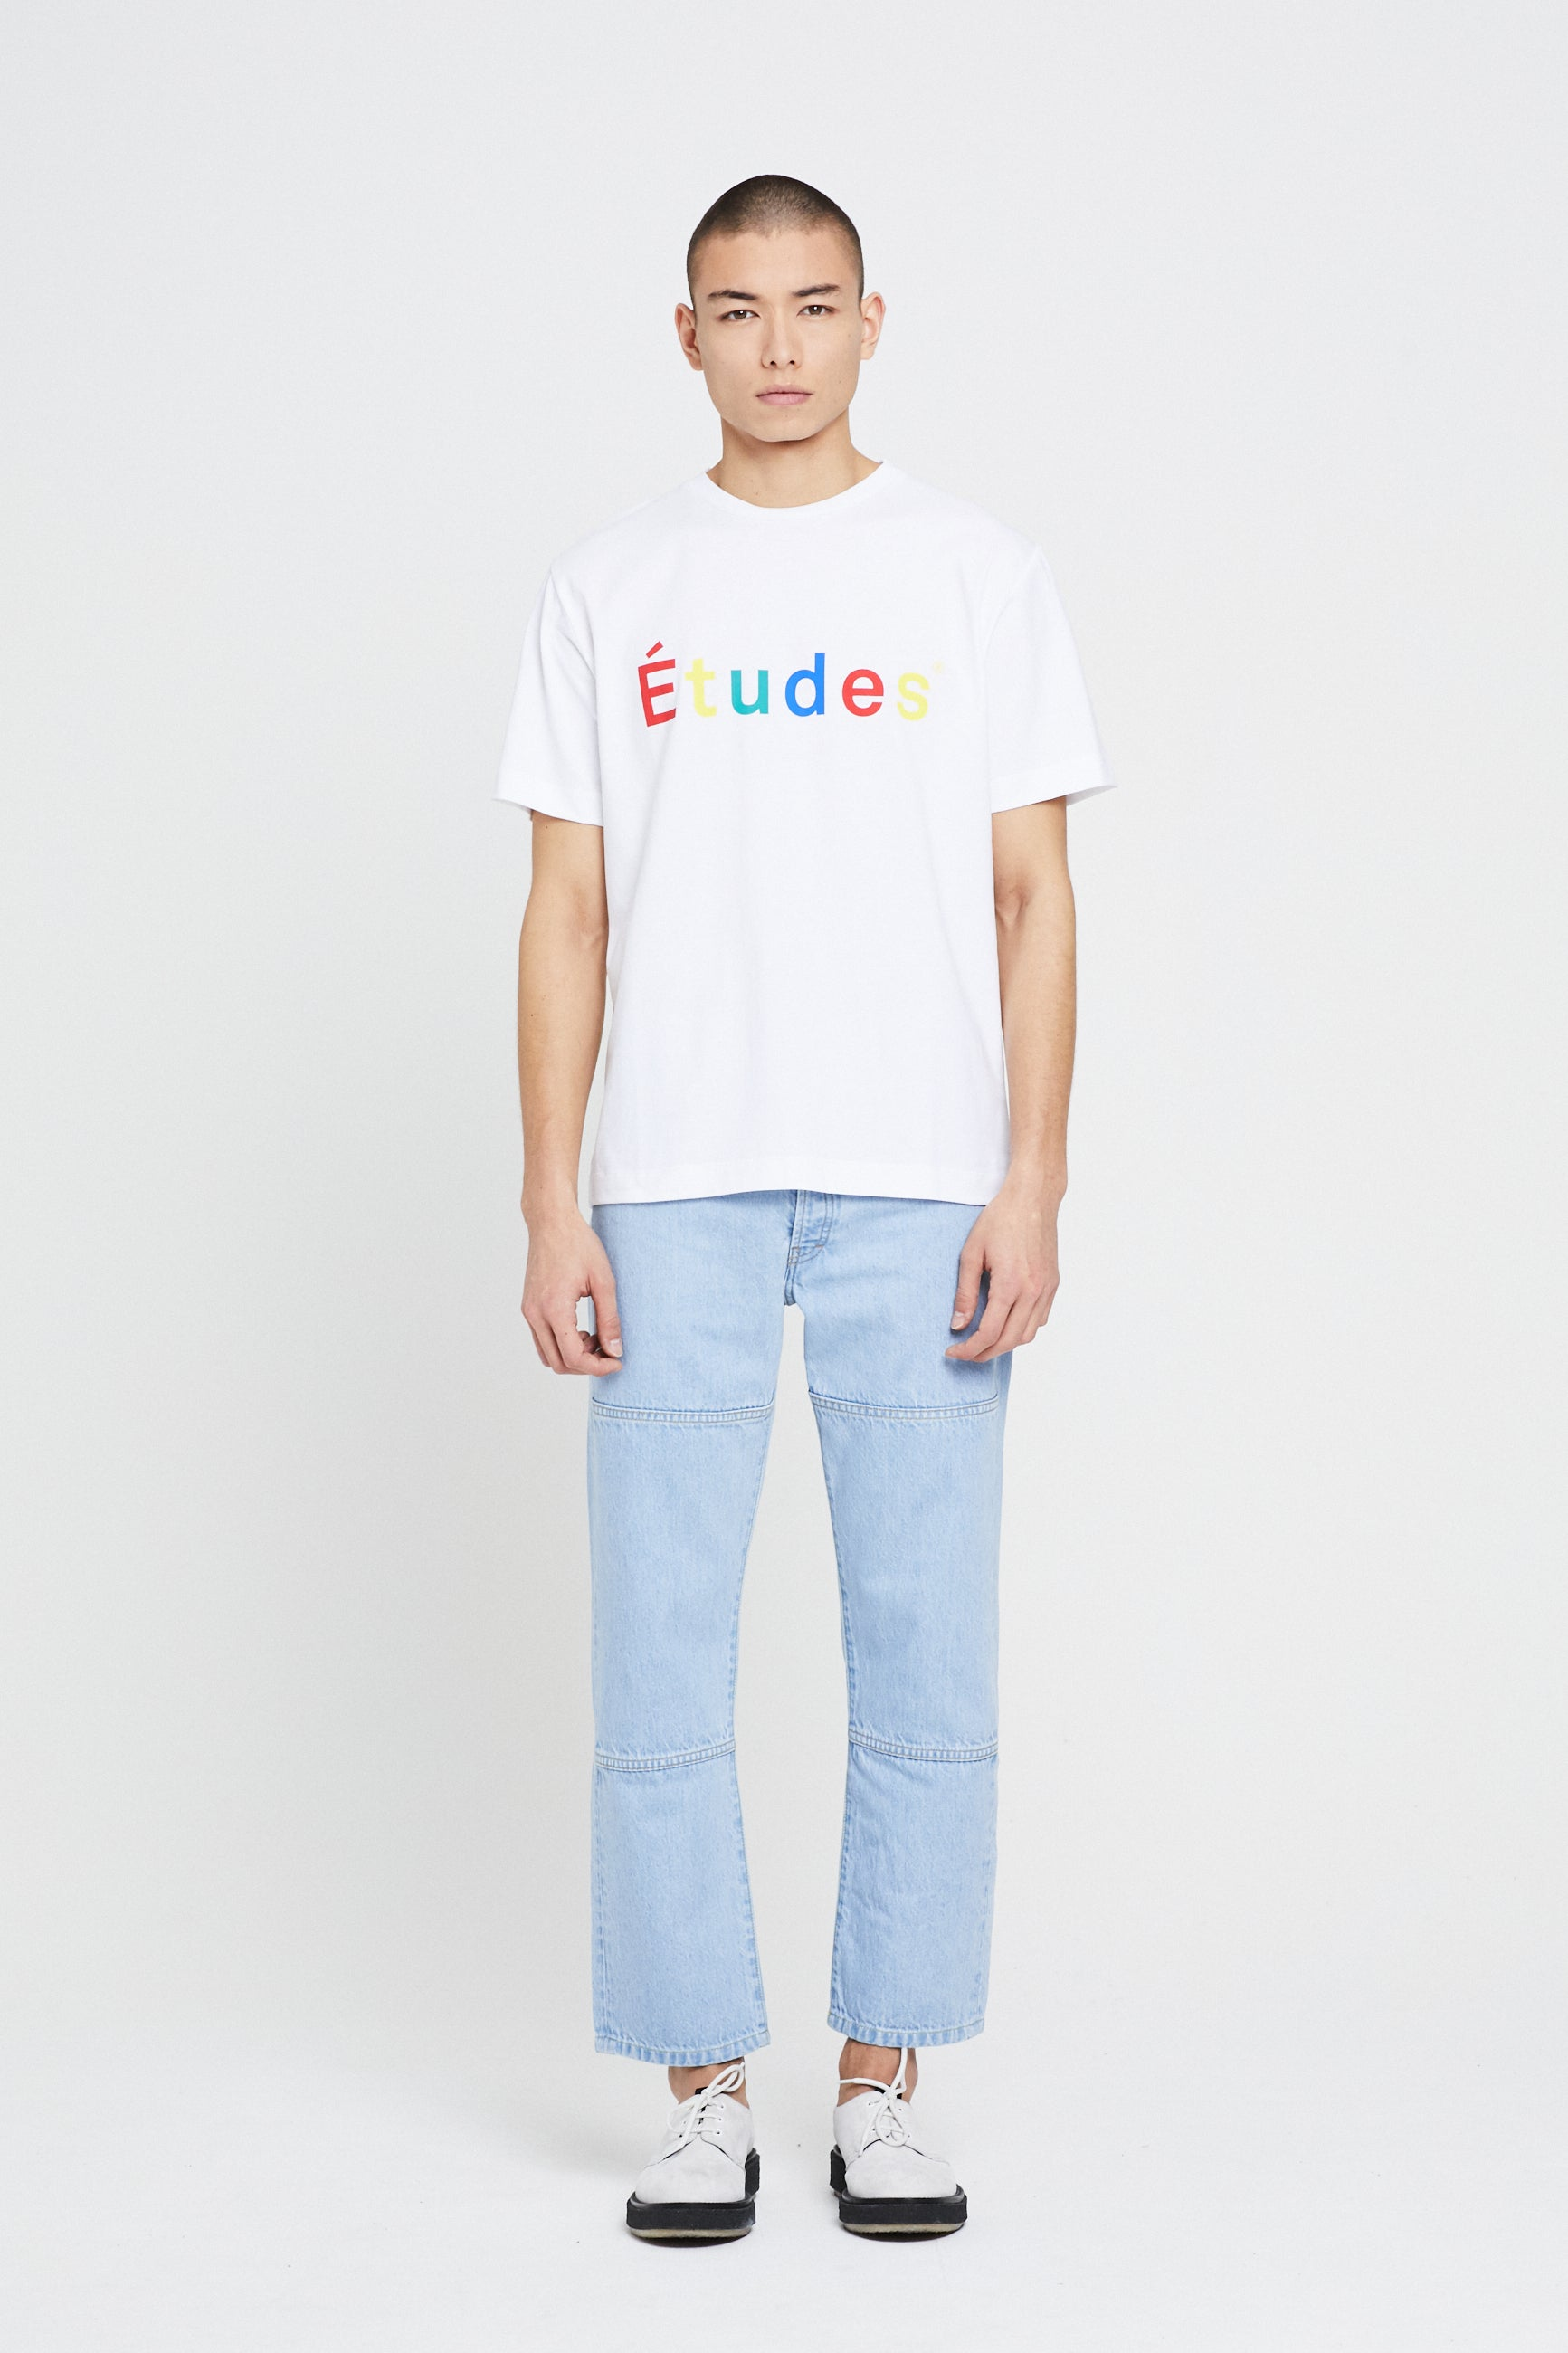 Études Wonder Multico Études White T-Shirt 1